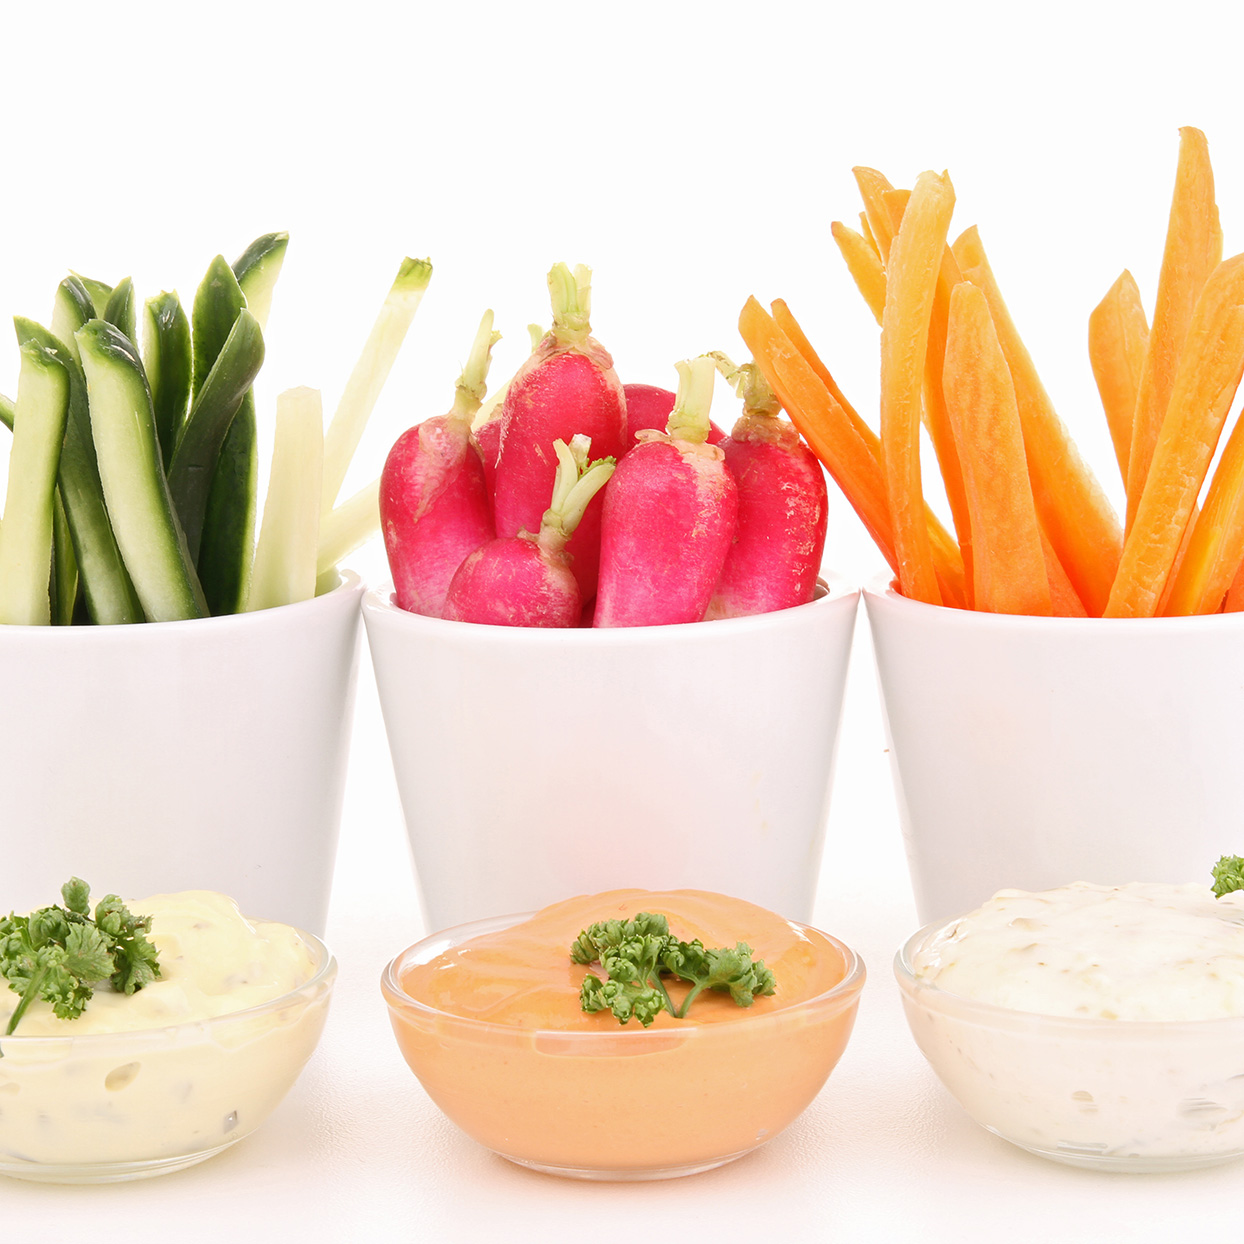 Healthy Snack: Veggies and Dip